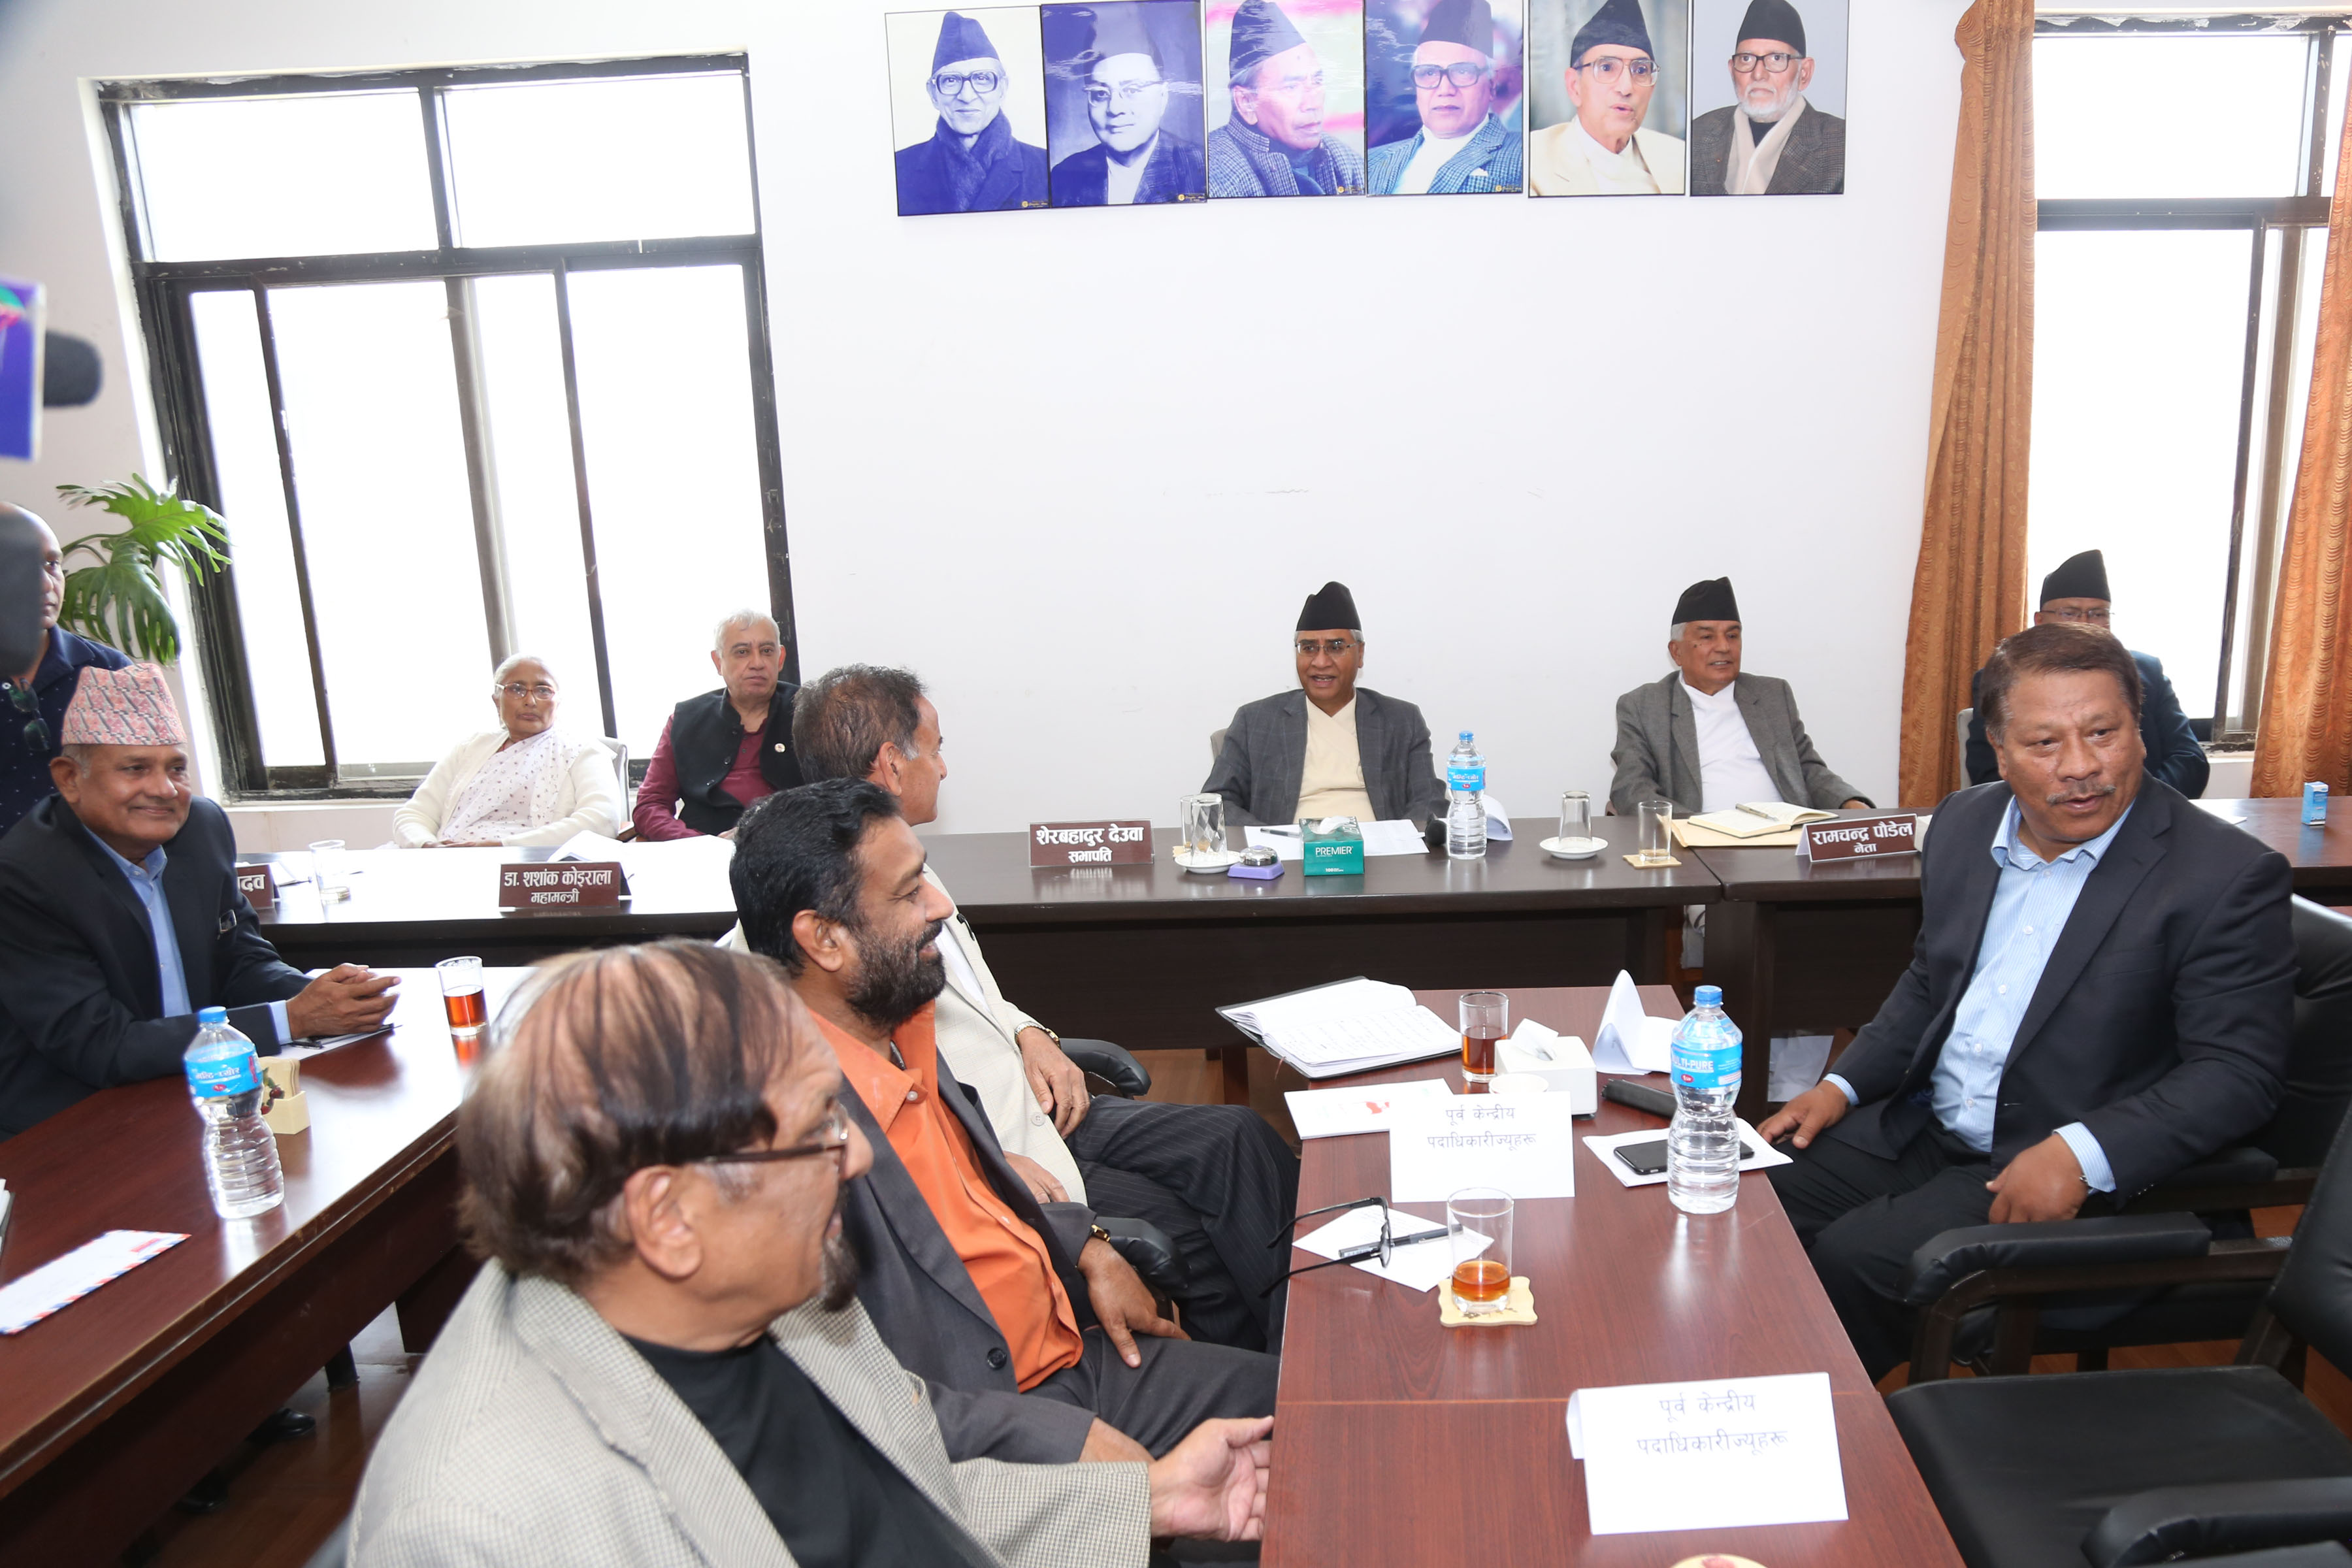 FILE PHOTO: Party leaders and members of Nepali Congress Central Working Committee hold a meeting at NCu2019s central office in Sanepa on Friday, March 23, 2018. Photo: Roshan Sapkota/RSSn